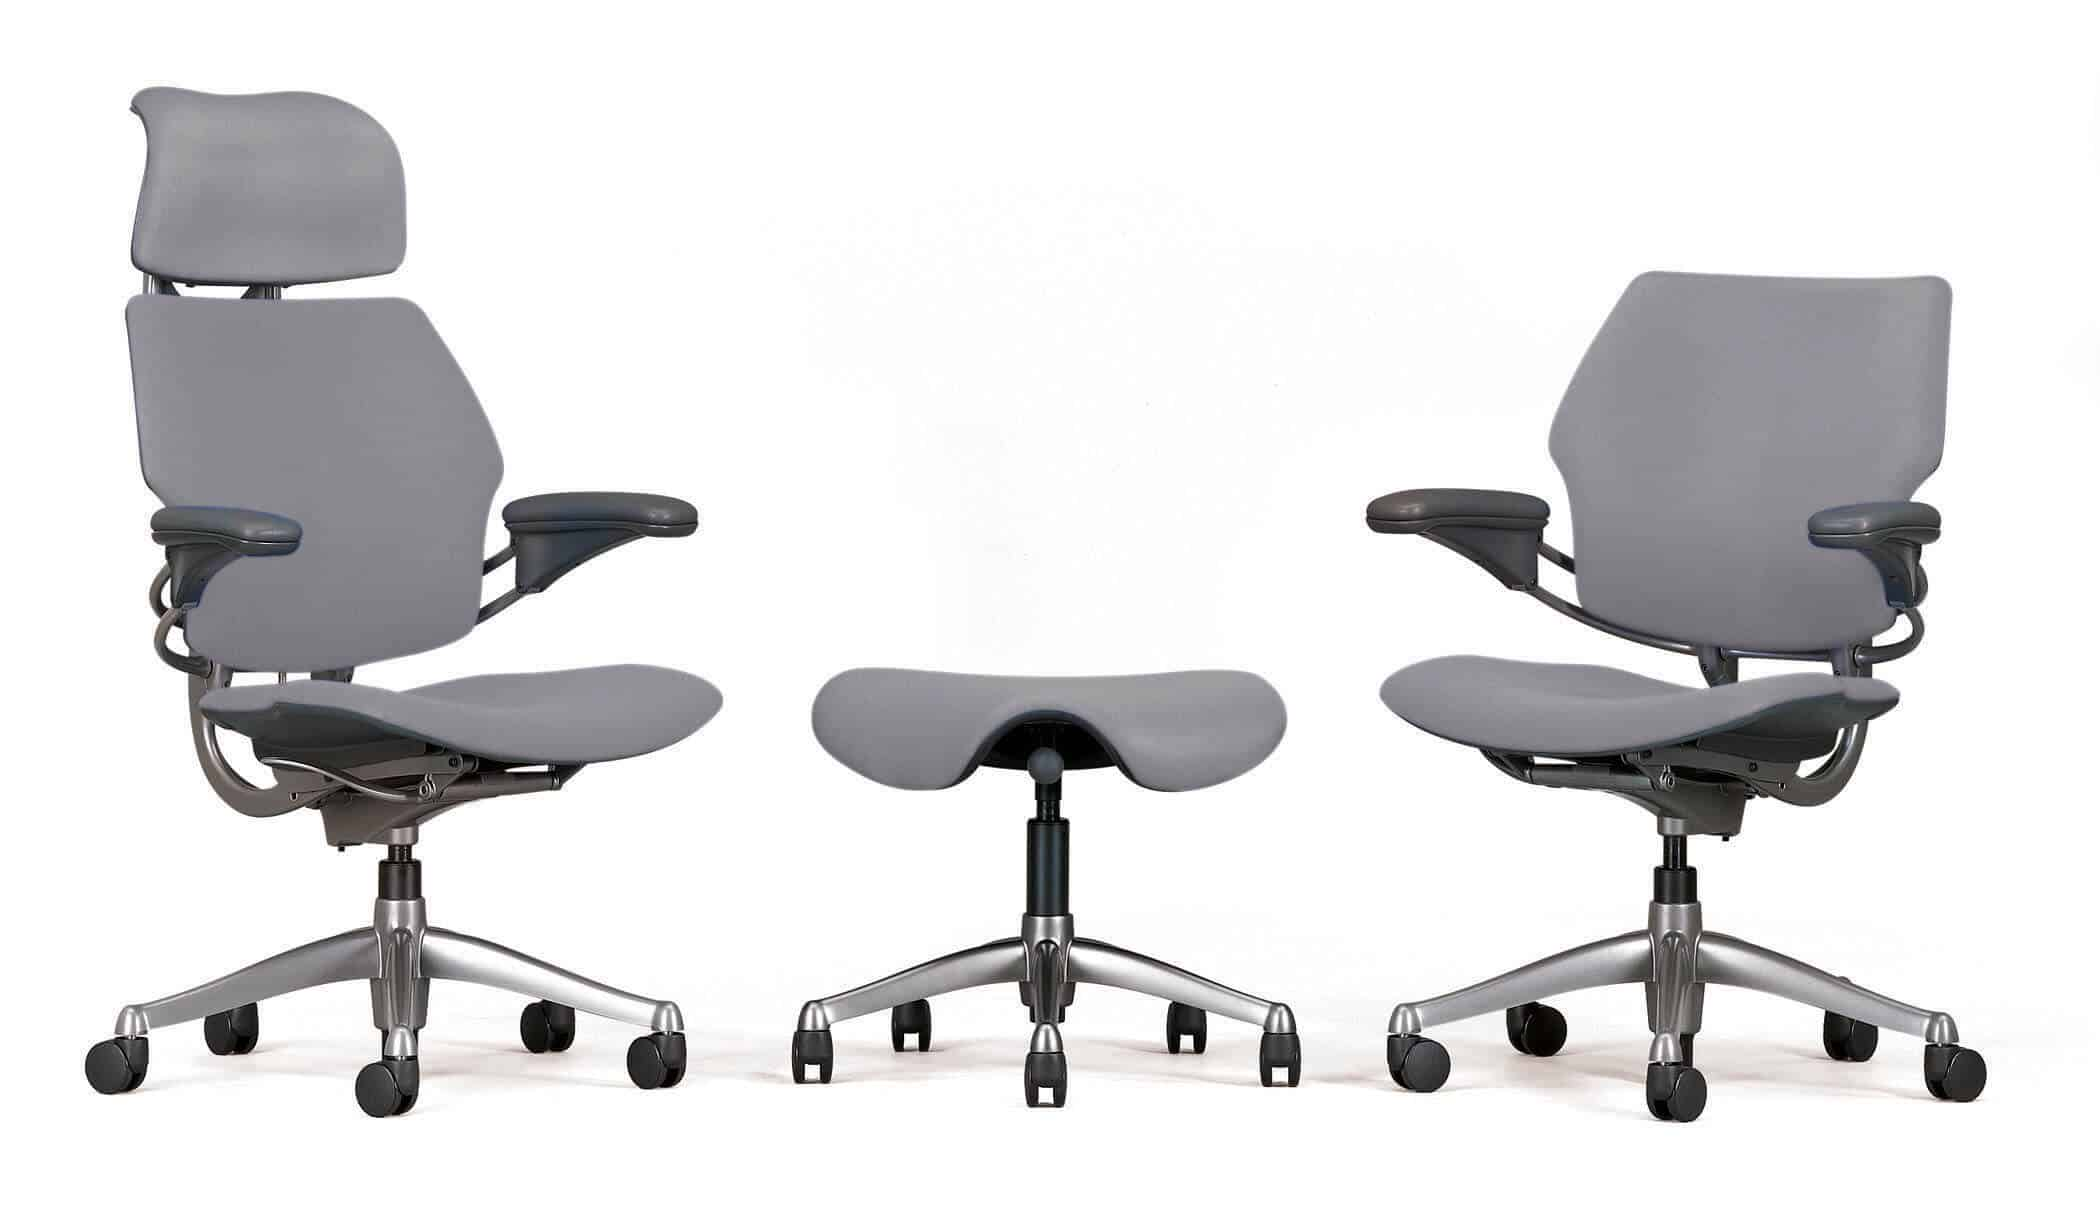 freedom task chair with headrest folding sale office guide and how to buy a desk 43 top 10